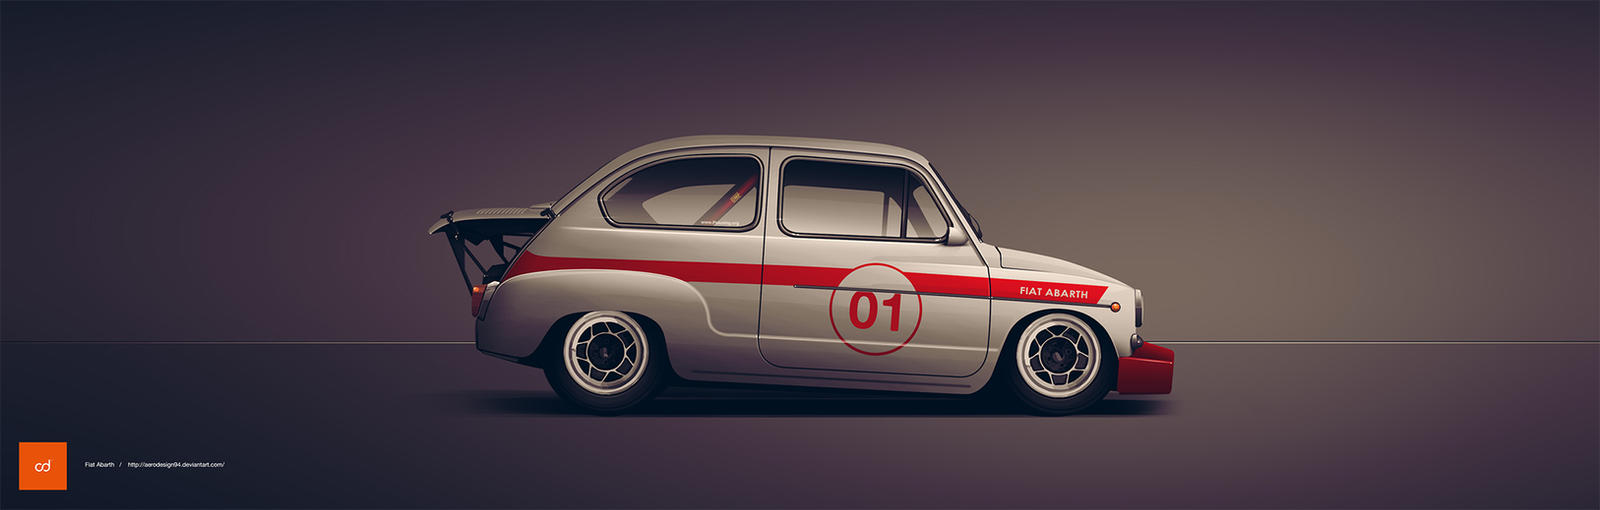 Fiat Abarth 1000 Tc By Aerodesign94 On Deviantart